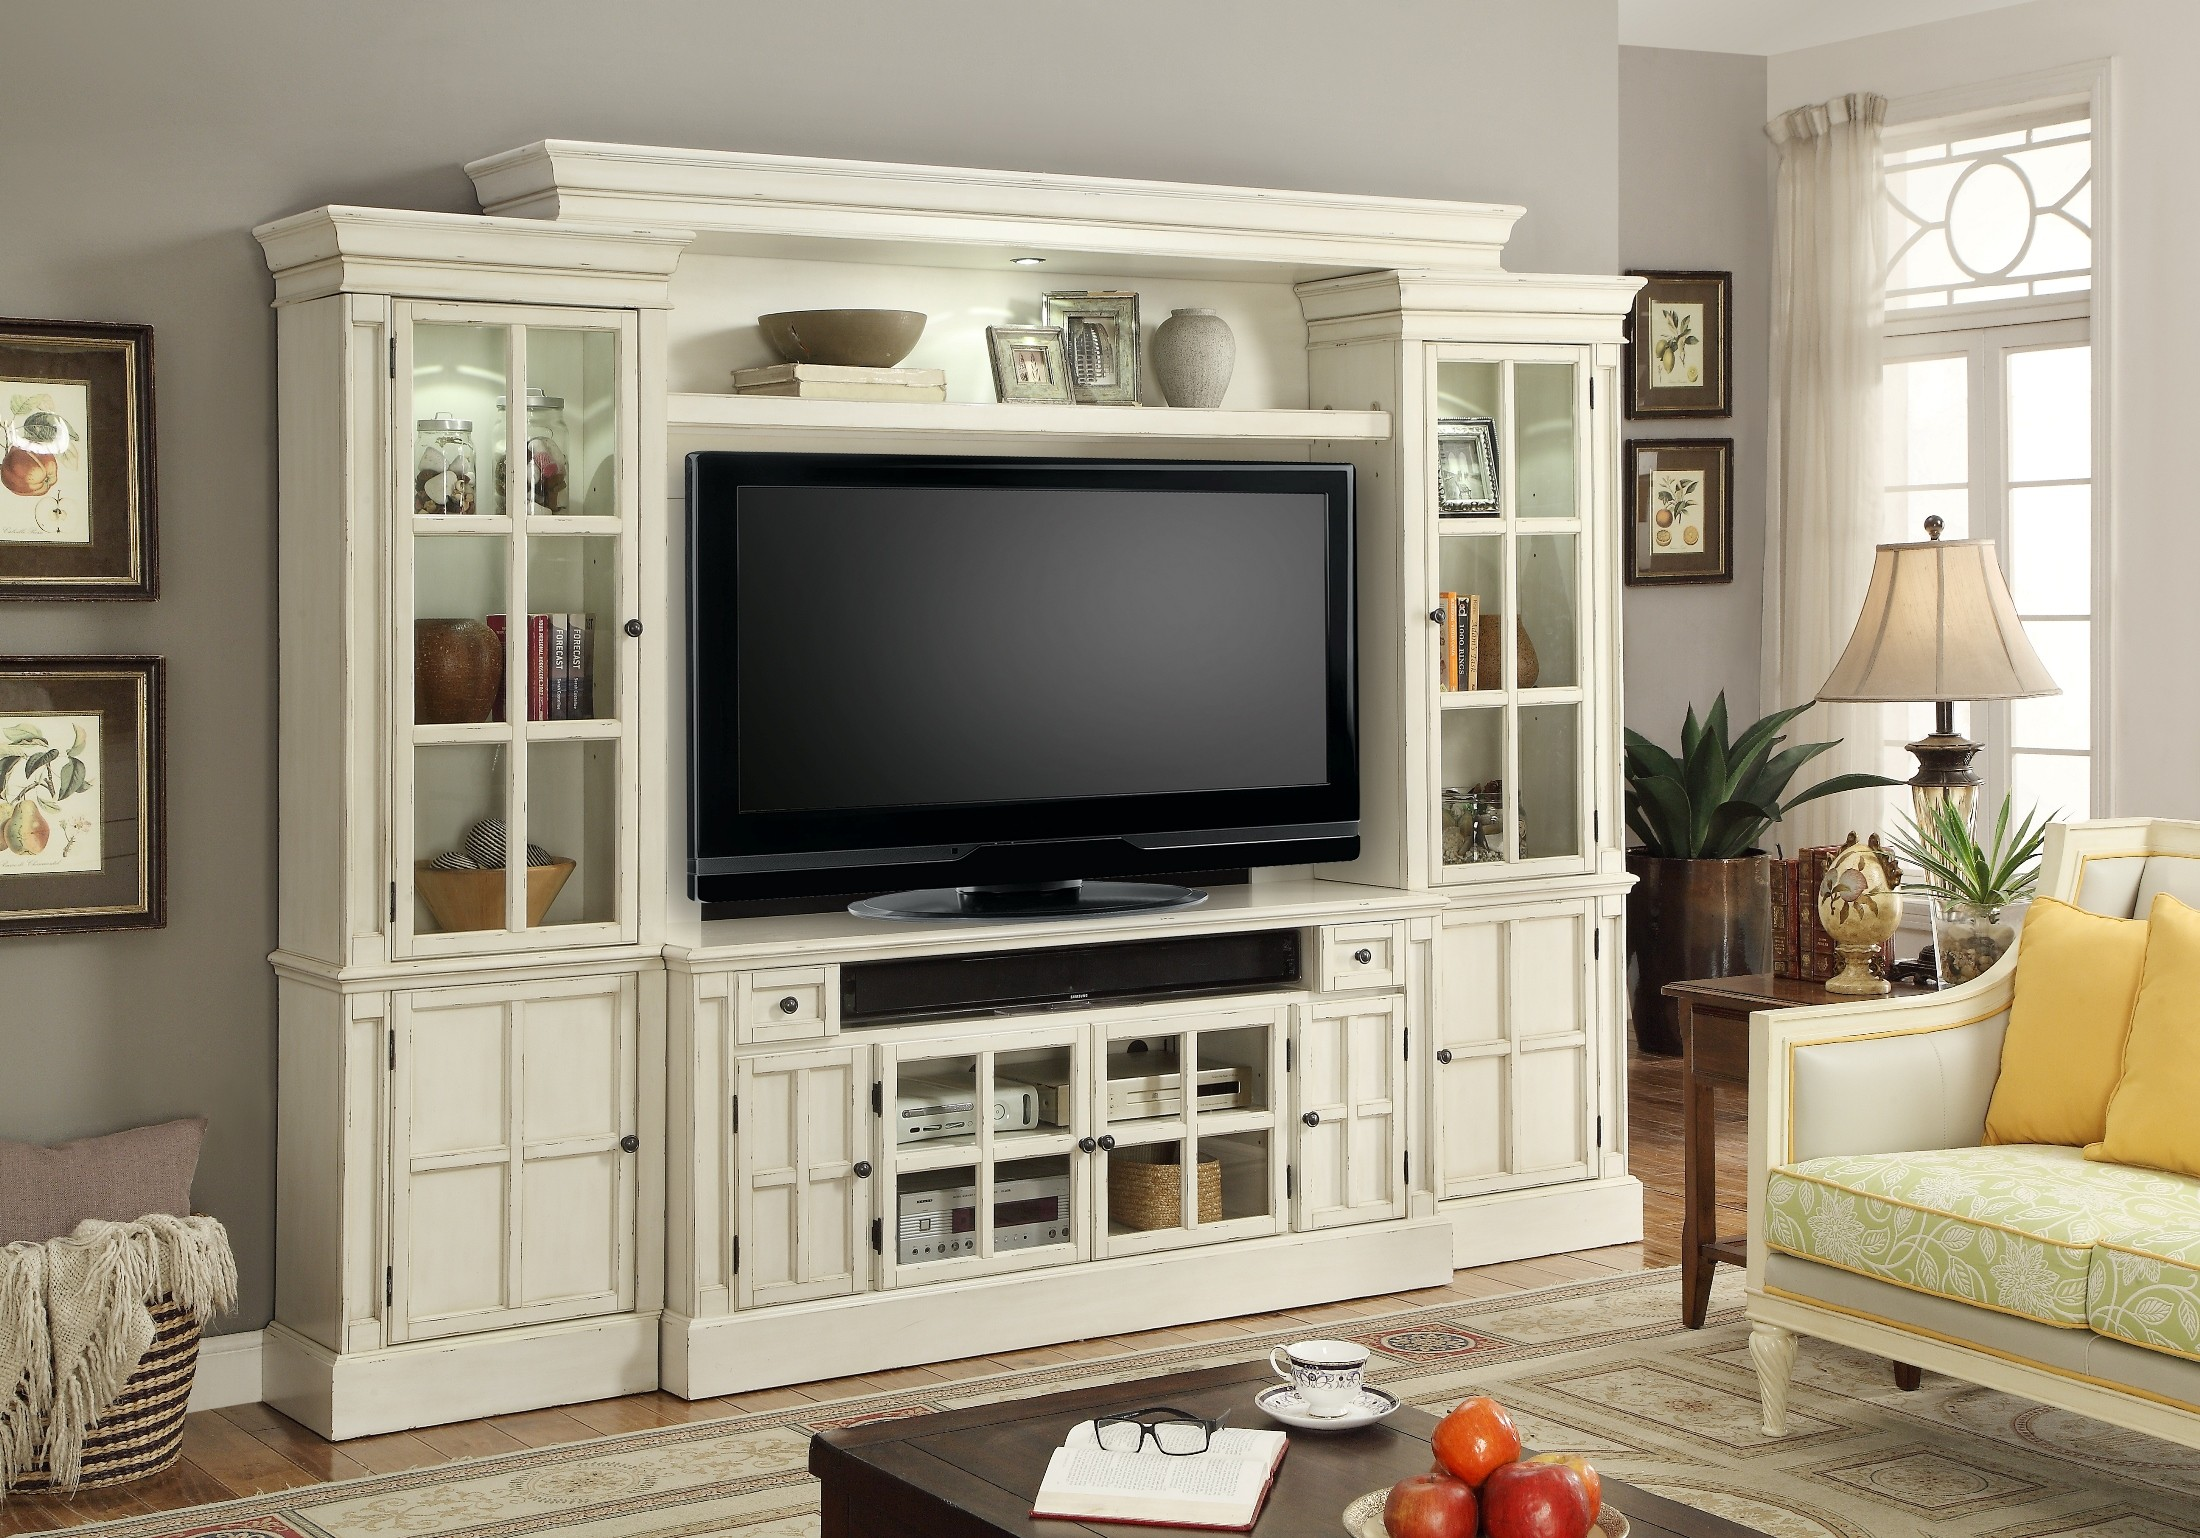 Classic Bedroom Decorating Ideas Charlotte Antique Vintage White 62 Quot Entertainment Wall